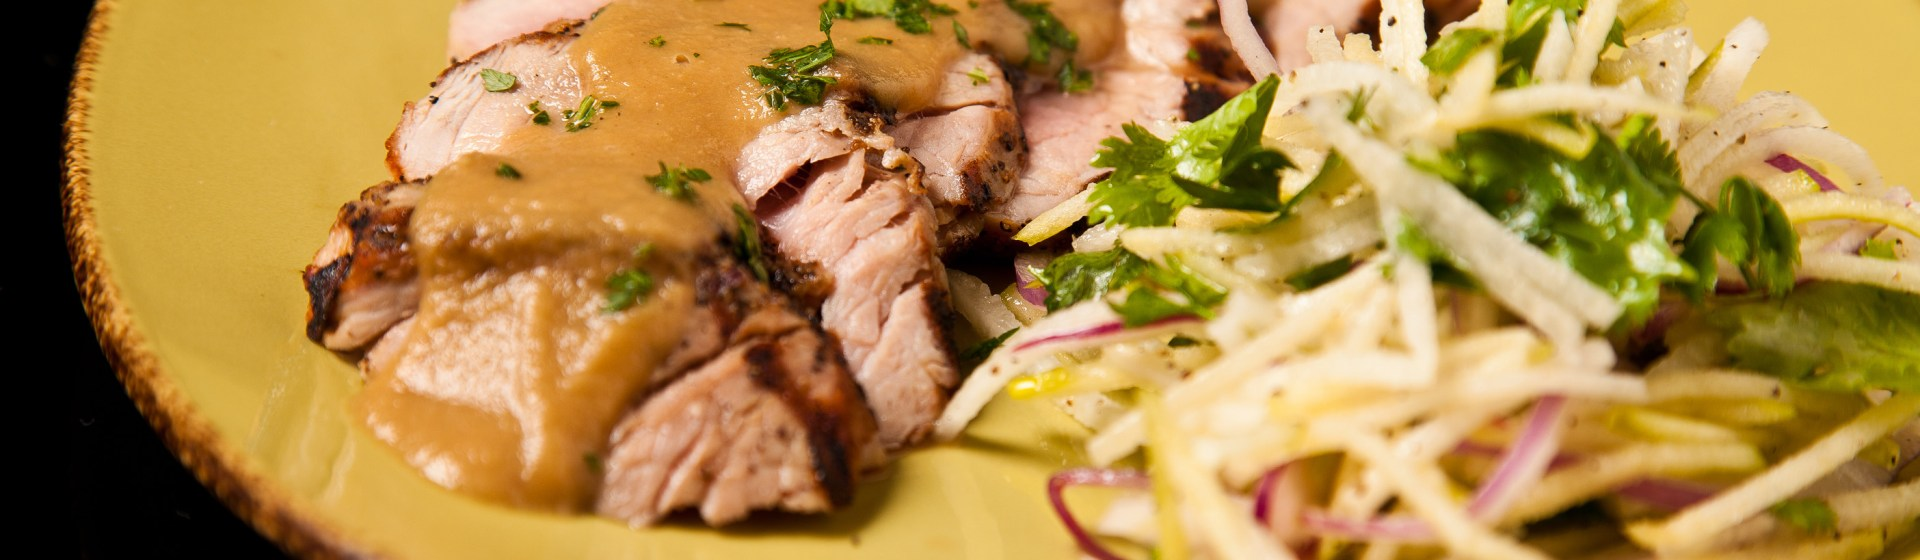 Pork Tenderloin with Apple Jicama Slaw - Food Republic